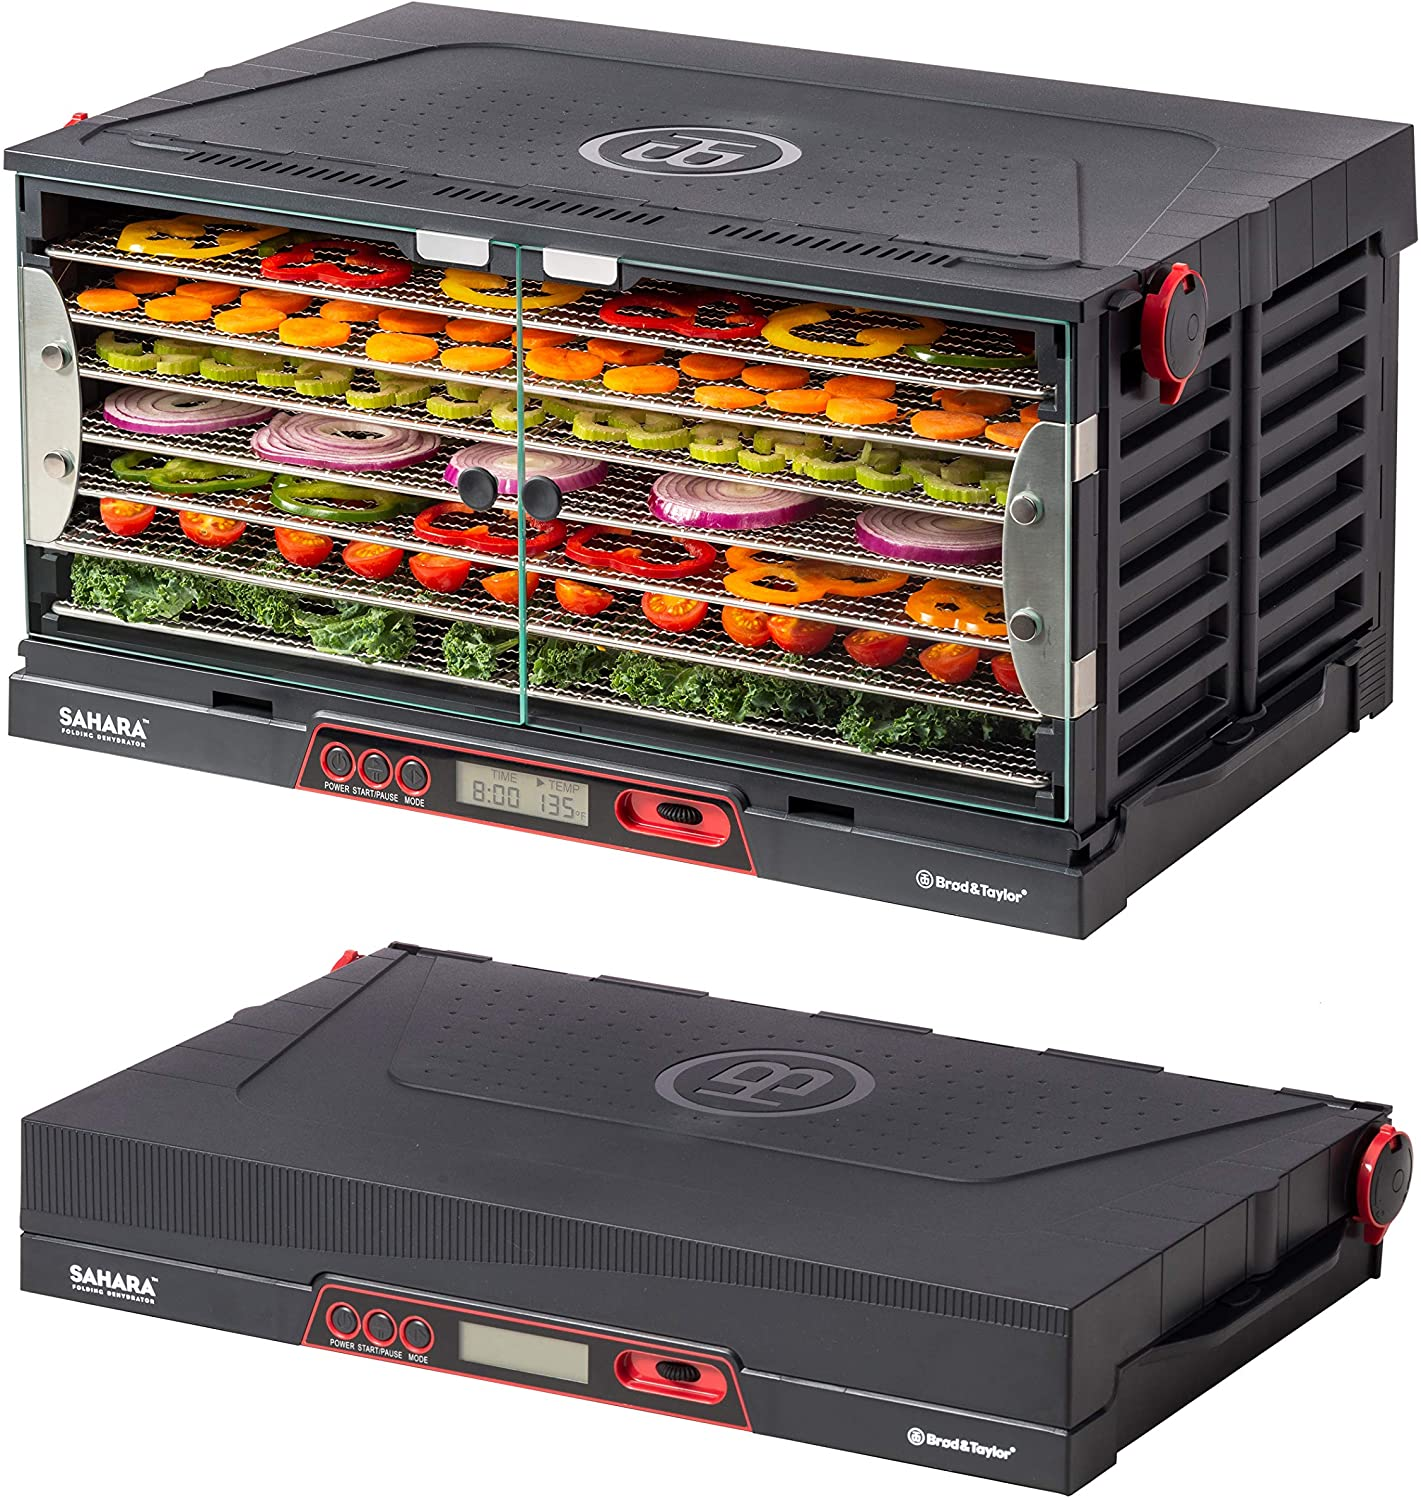 Brod Taylor SAHARA Folding Food Dehydrator, Beef Jerky, Fruit Leather, Vegetable Dryer Stainless Steel Shelves